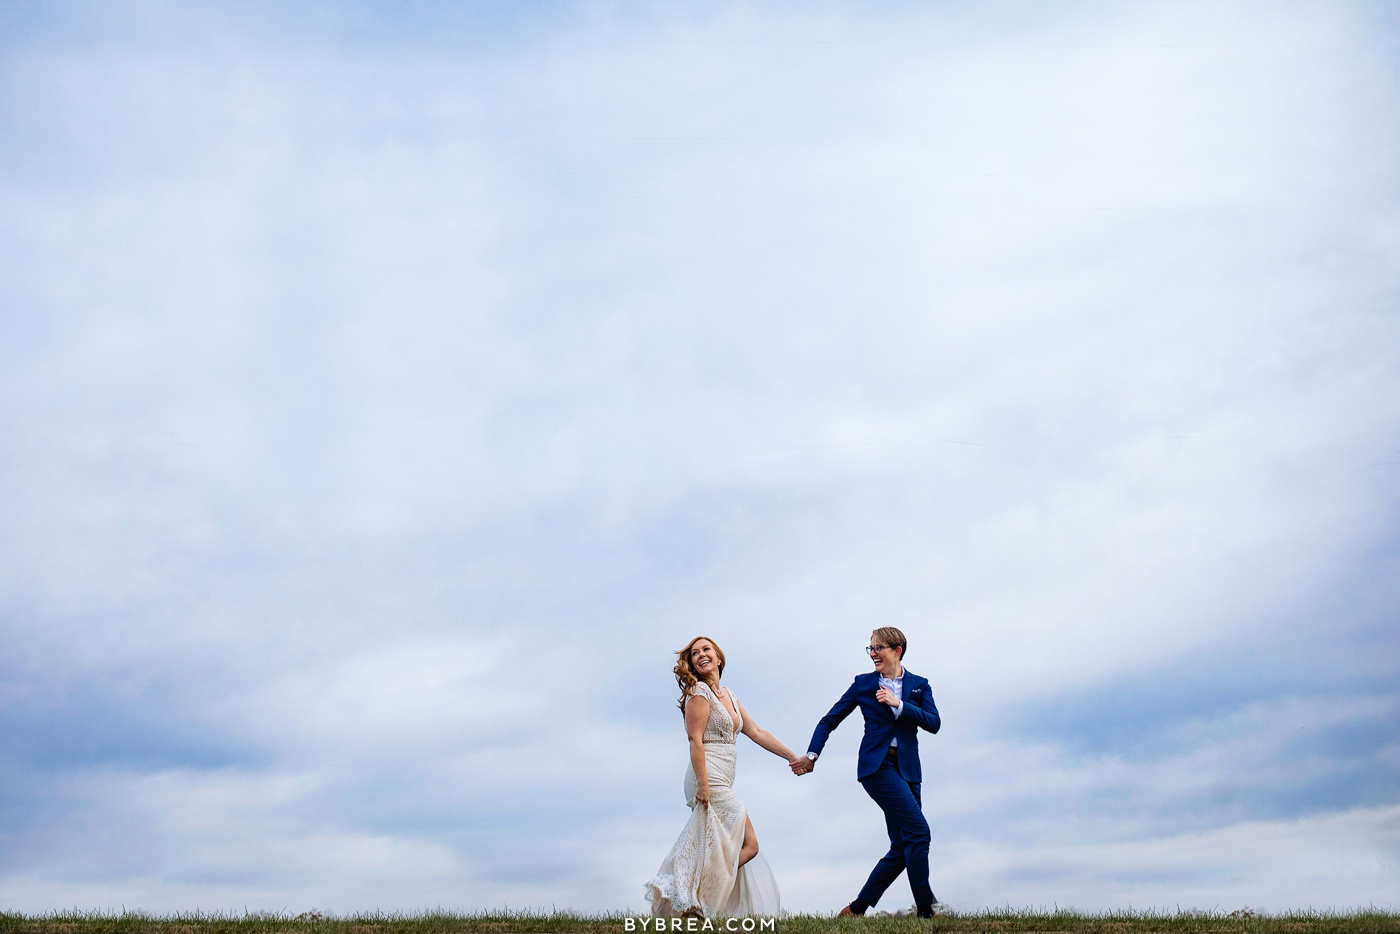 Candid moment of brides enjoying their wedding day during portraits at Tusculum Farm